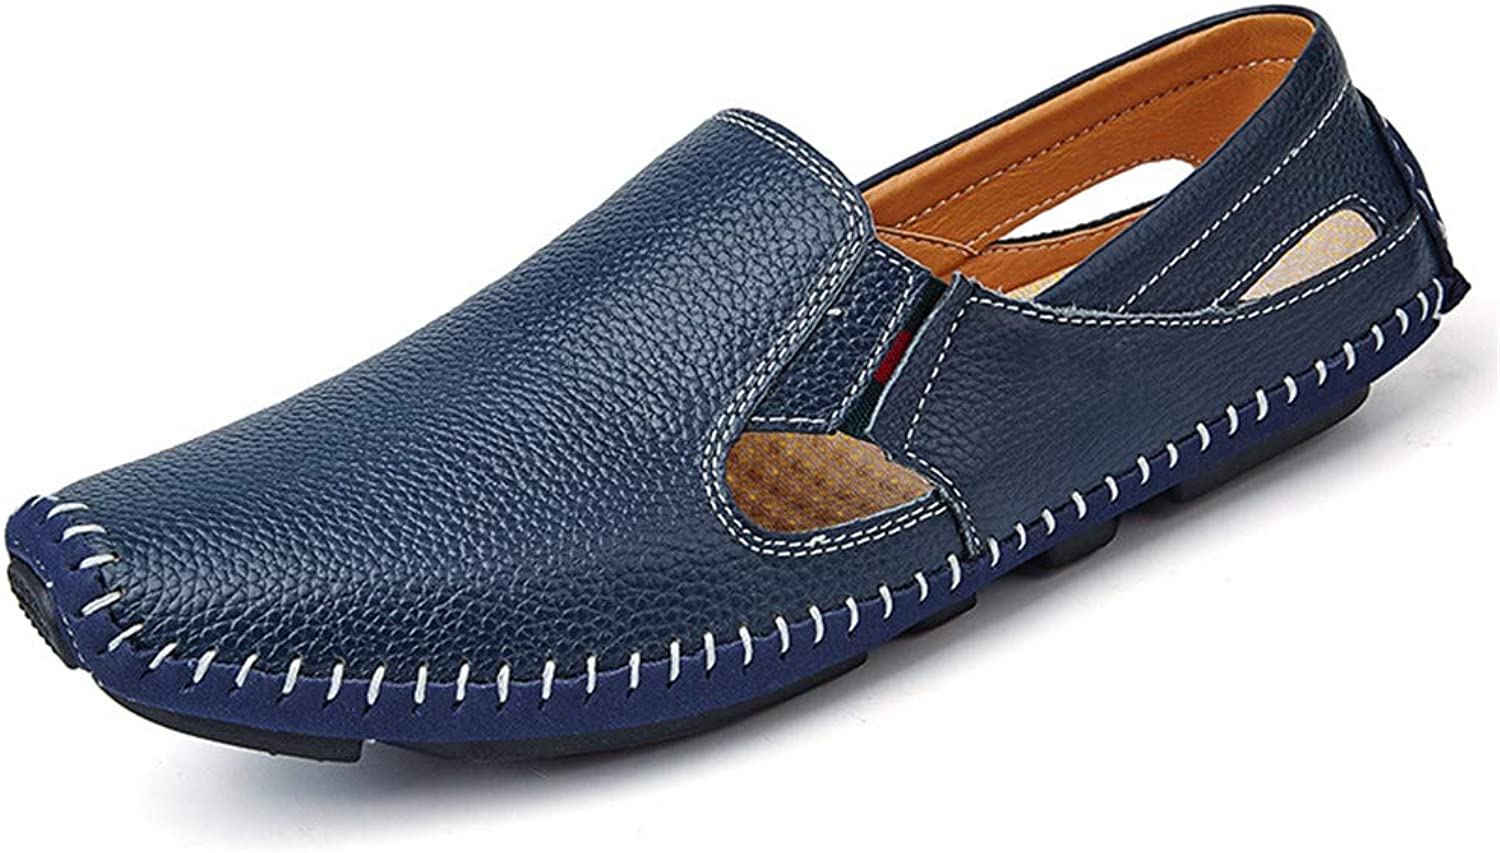 Fashion Men Drive Loafers Casual and Fashion Summer Hollow Breathable Leather Boat Moccasins Men's Boots (color   blueee, Size   7.5 UK)